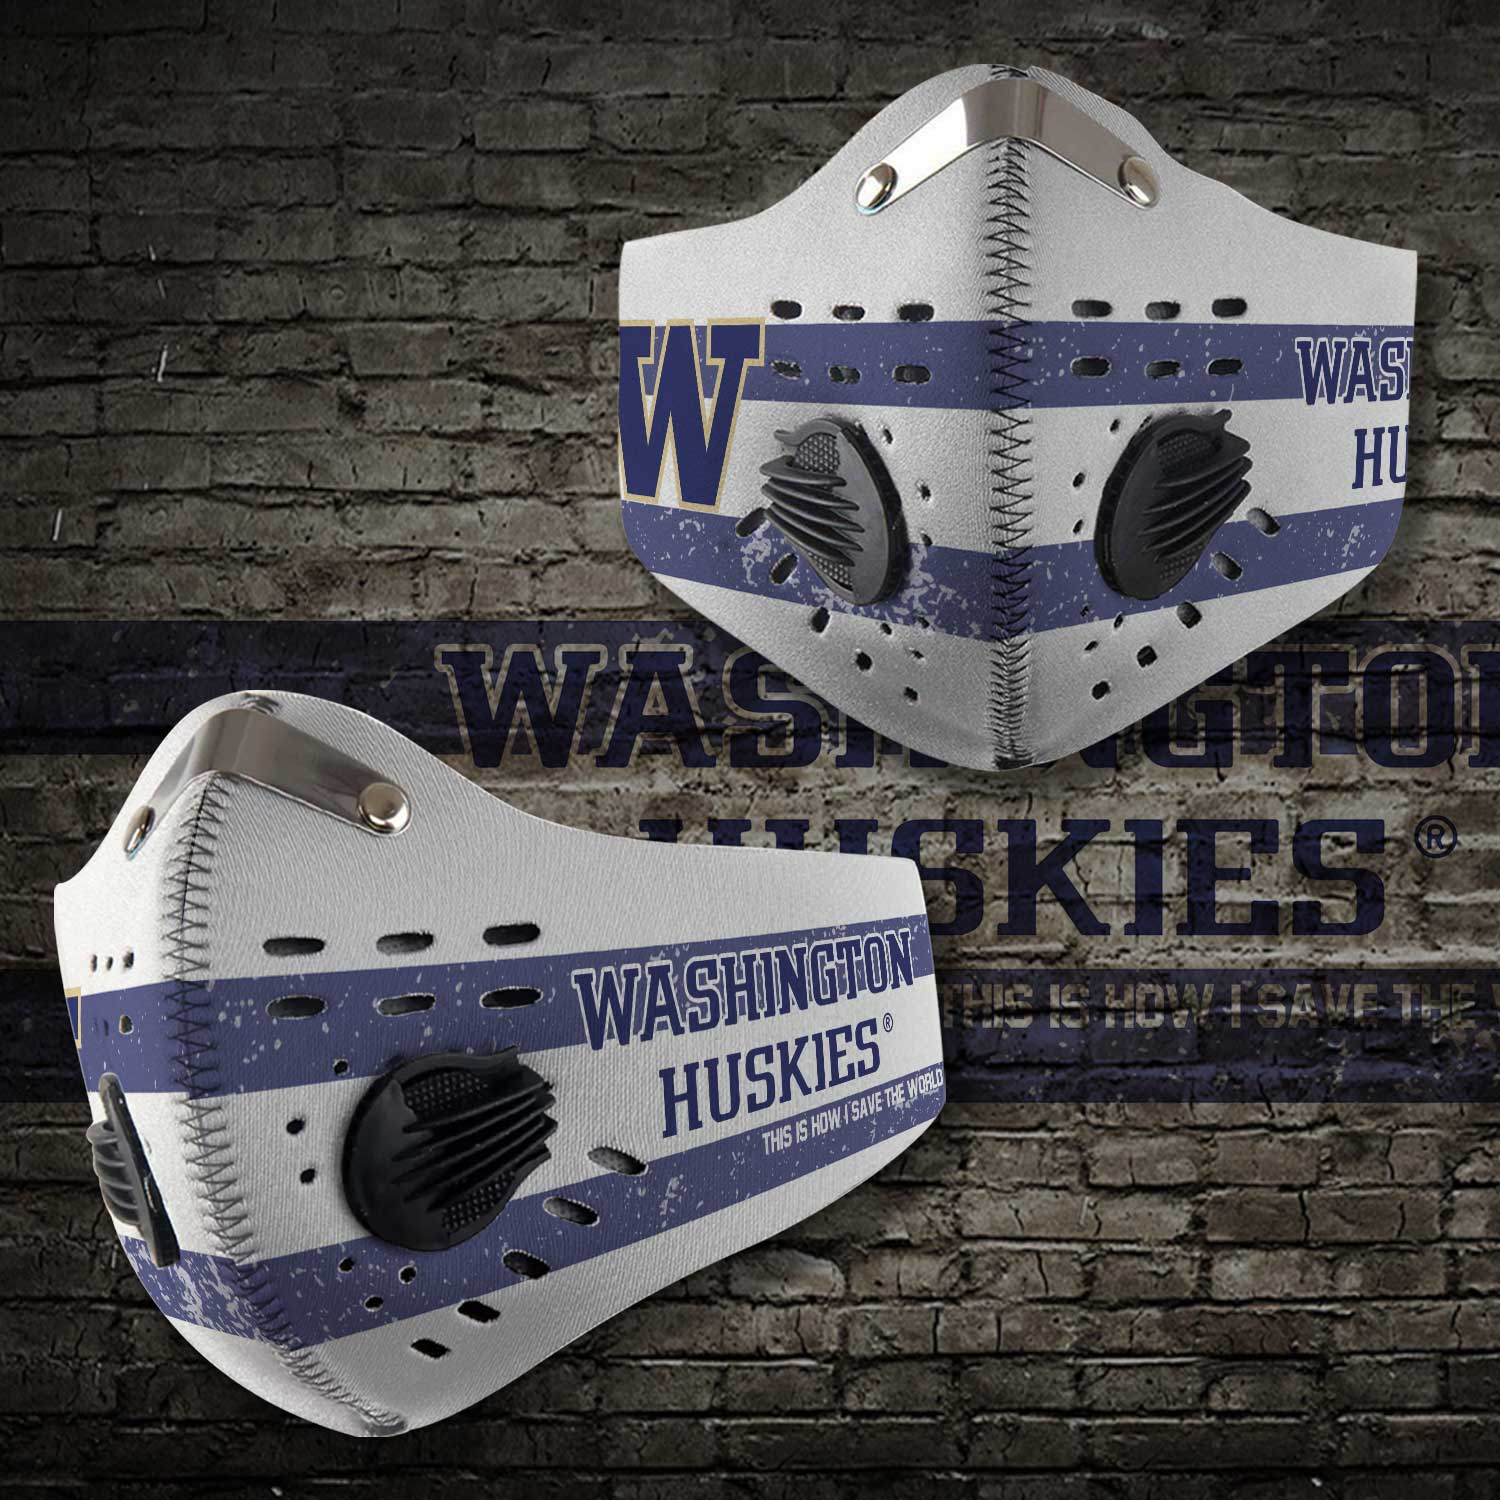 Washington huskies this is how i save the world carbon filter face mask 2